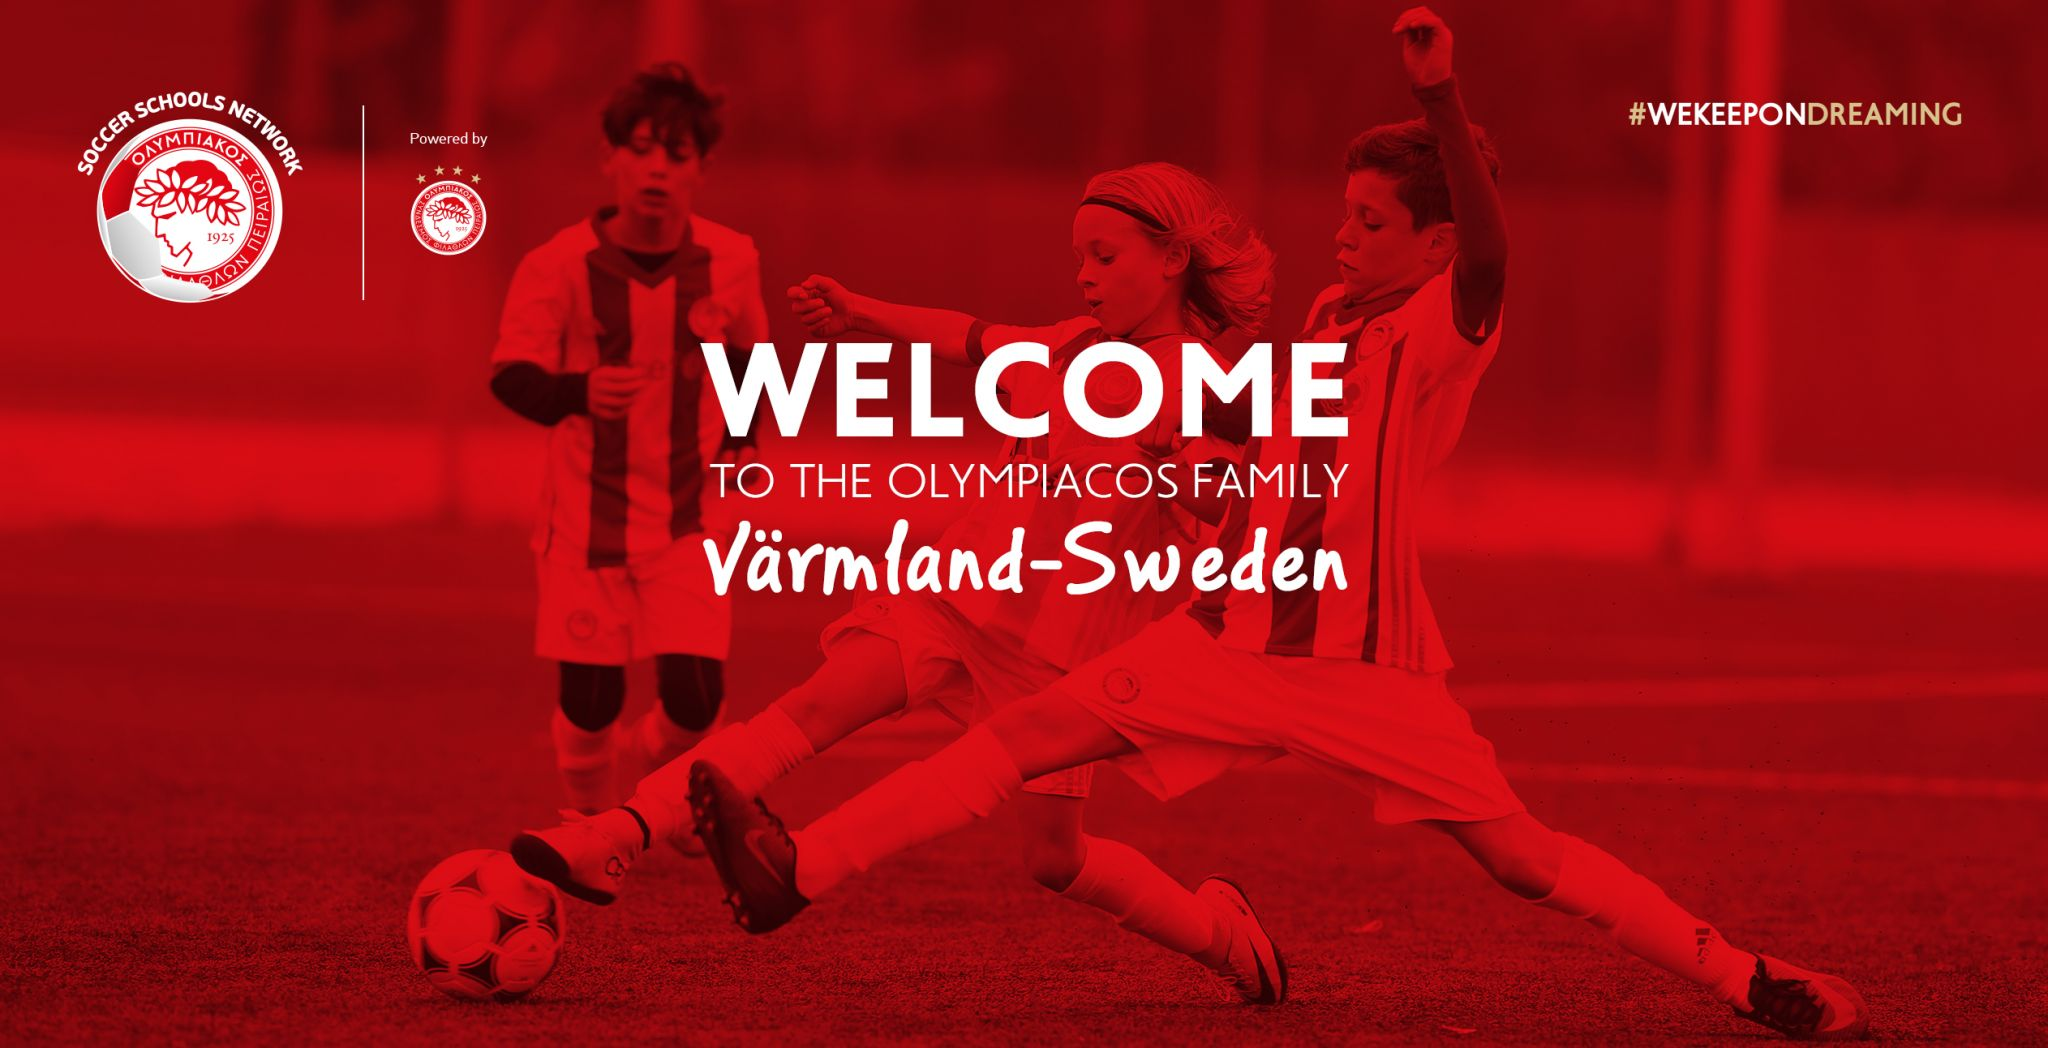 Our Legend's Academy lands on Sweden